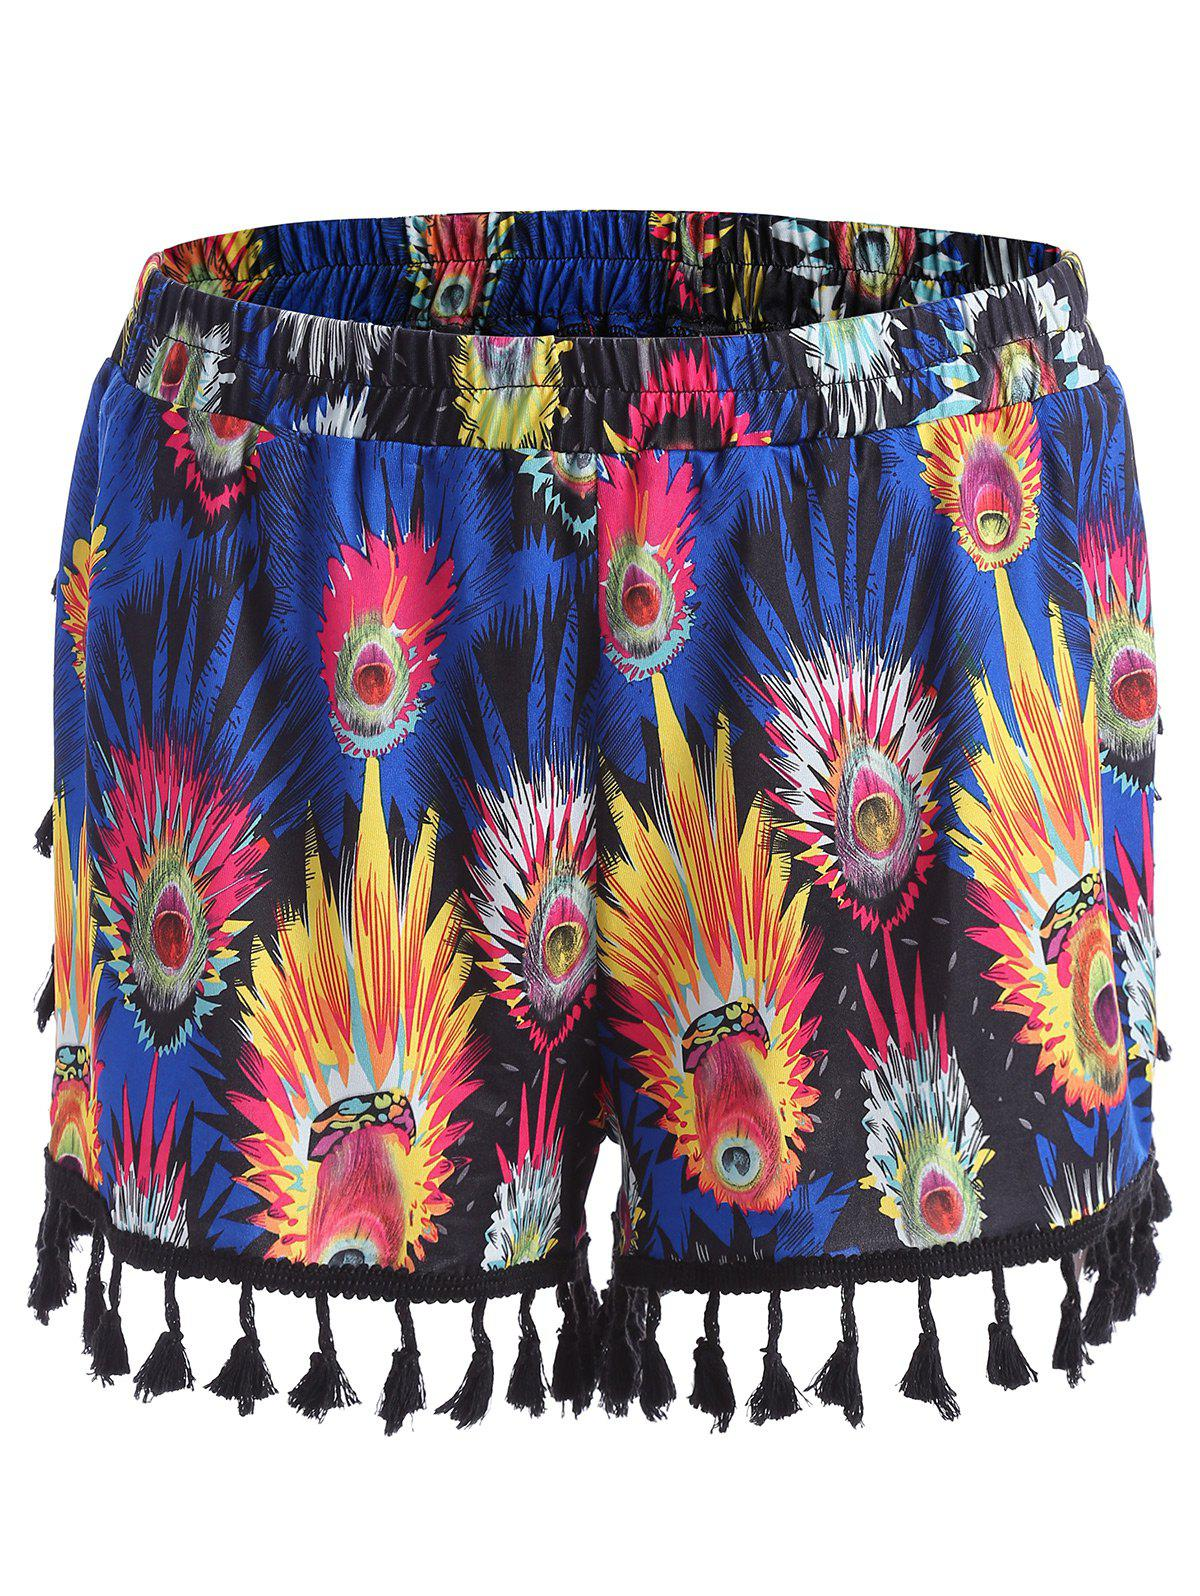 Tassel Feather Print Mini Plus Size ShortsWOMEN<br><br>Size: 3XL; Color: BLUE; Style: Fashion; Length: Short; Material: Polyester; Fit Type: Regular; Waist Type: Mid; Closure Type: Elastic Waist; Pattern Type: Feather; Embellishment: Tassel; Pant Style: Straight; Weight: 0.1600kg; Package Contents: 1 x Shorts;